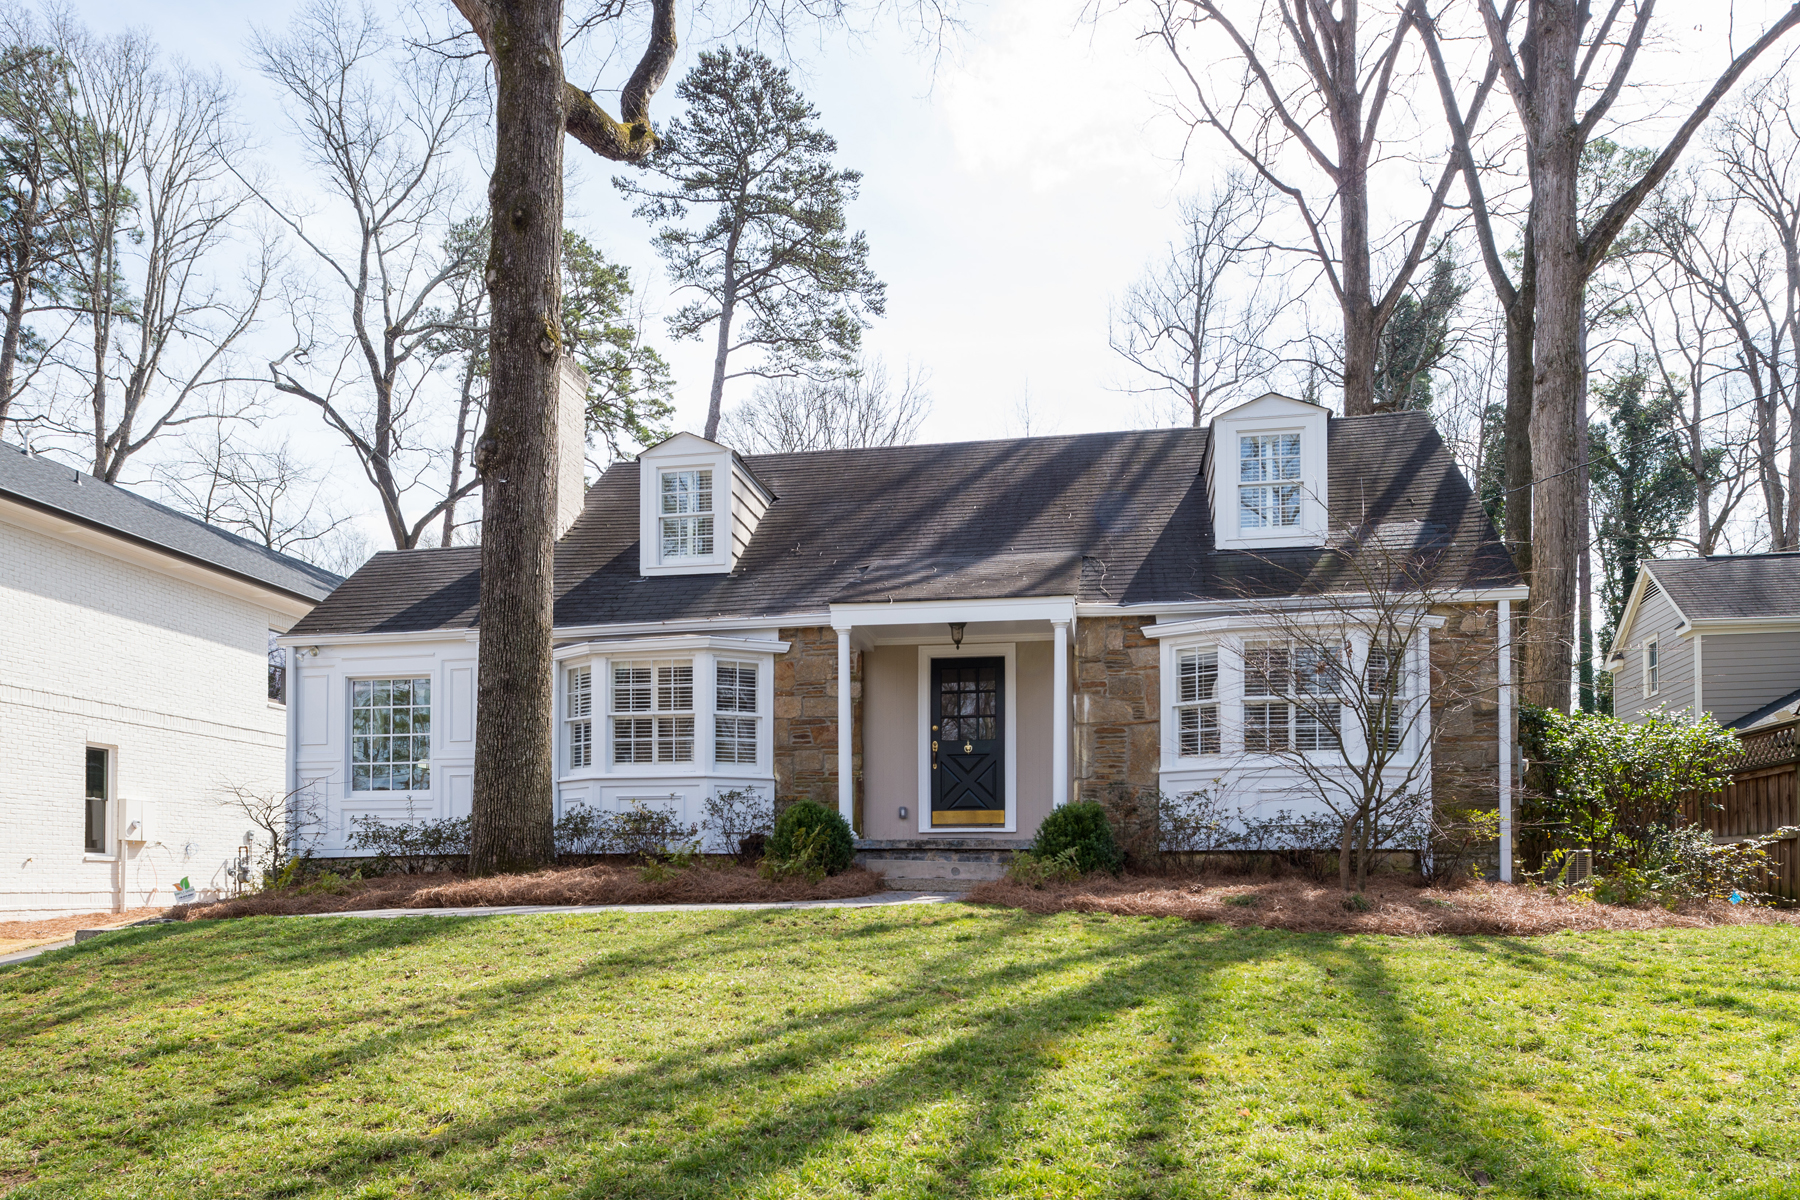 Vivienda unifamiliar por un Venta en Excellent Home In Buckhead With Three Car Garage 281 Alberta Drive Buckhead Forest, Atlanta, Georgia, 30305 Estados Unidos